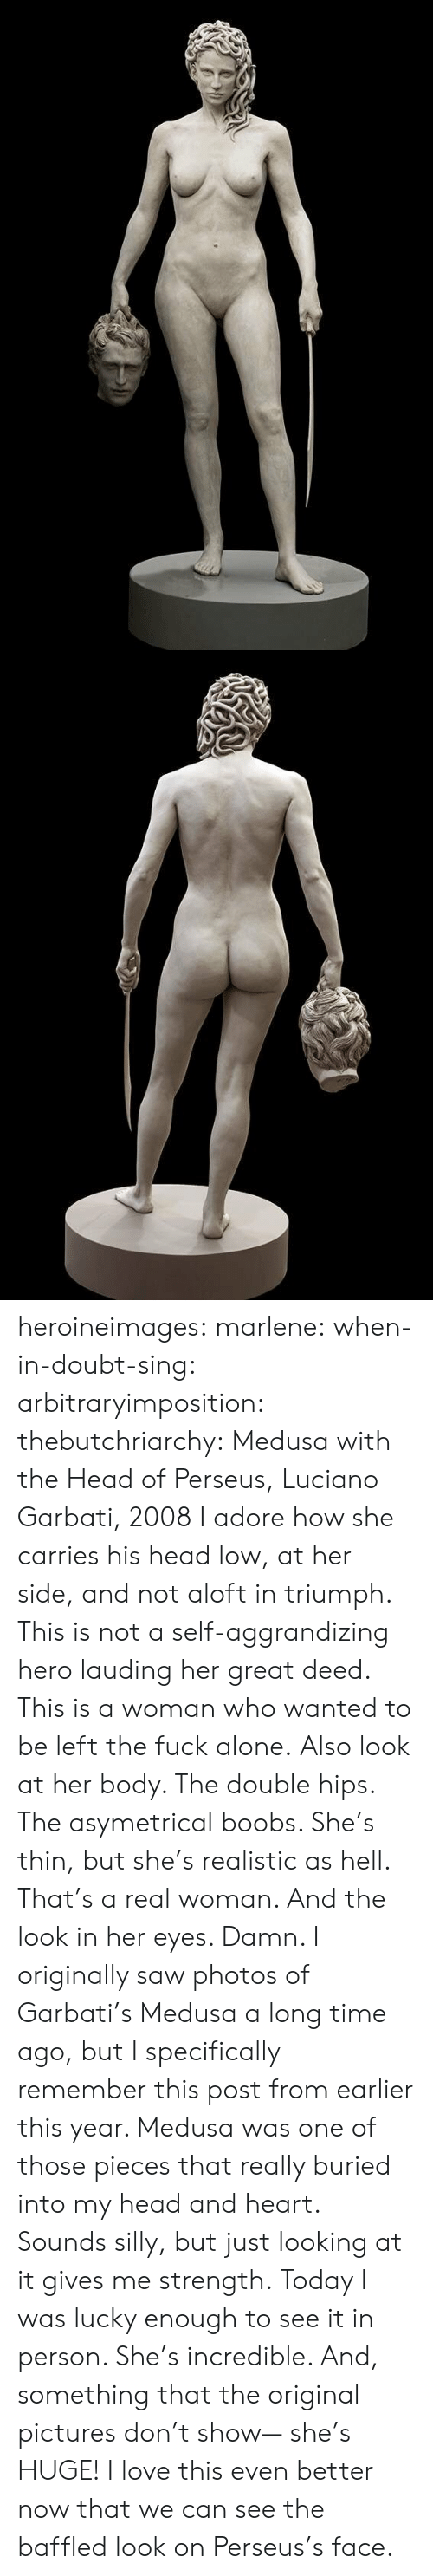 hips: heroineimages:  marlene:  when-in-doubt-sing:  arbitraryimposition:  thebutchriarchy: Medusa with the Head of Perseus, Luciano Garbati, 2008 I adore how she carries his head low, at her side, and not aloft in triumph.  This is not a self-aggrandizing hero lauding her great deed. This is a woman who wanted to be left the fuck alone.   Also look at her body. The double hips. The asymetrical boobs. She's thin, but she's realistic as hell. That's a real woman.  And the look in her eyes. Damn.   I originally saw photos of Garbati's Medusa a long time ago, but I specifically remember this post from earlier this year. Medusa was one of those pieces that really buried into my head and heart. Sounds silly, but just looking at it gives me strength. Today I was lucky enough to see it in person. She's incredible. And, something that the original pictures don't show— she's HUGE!    I love this even better now that we can see the baffled look on Perseus's face.